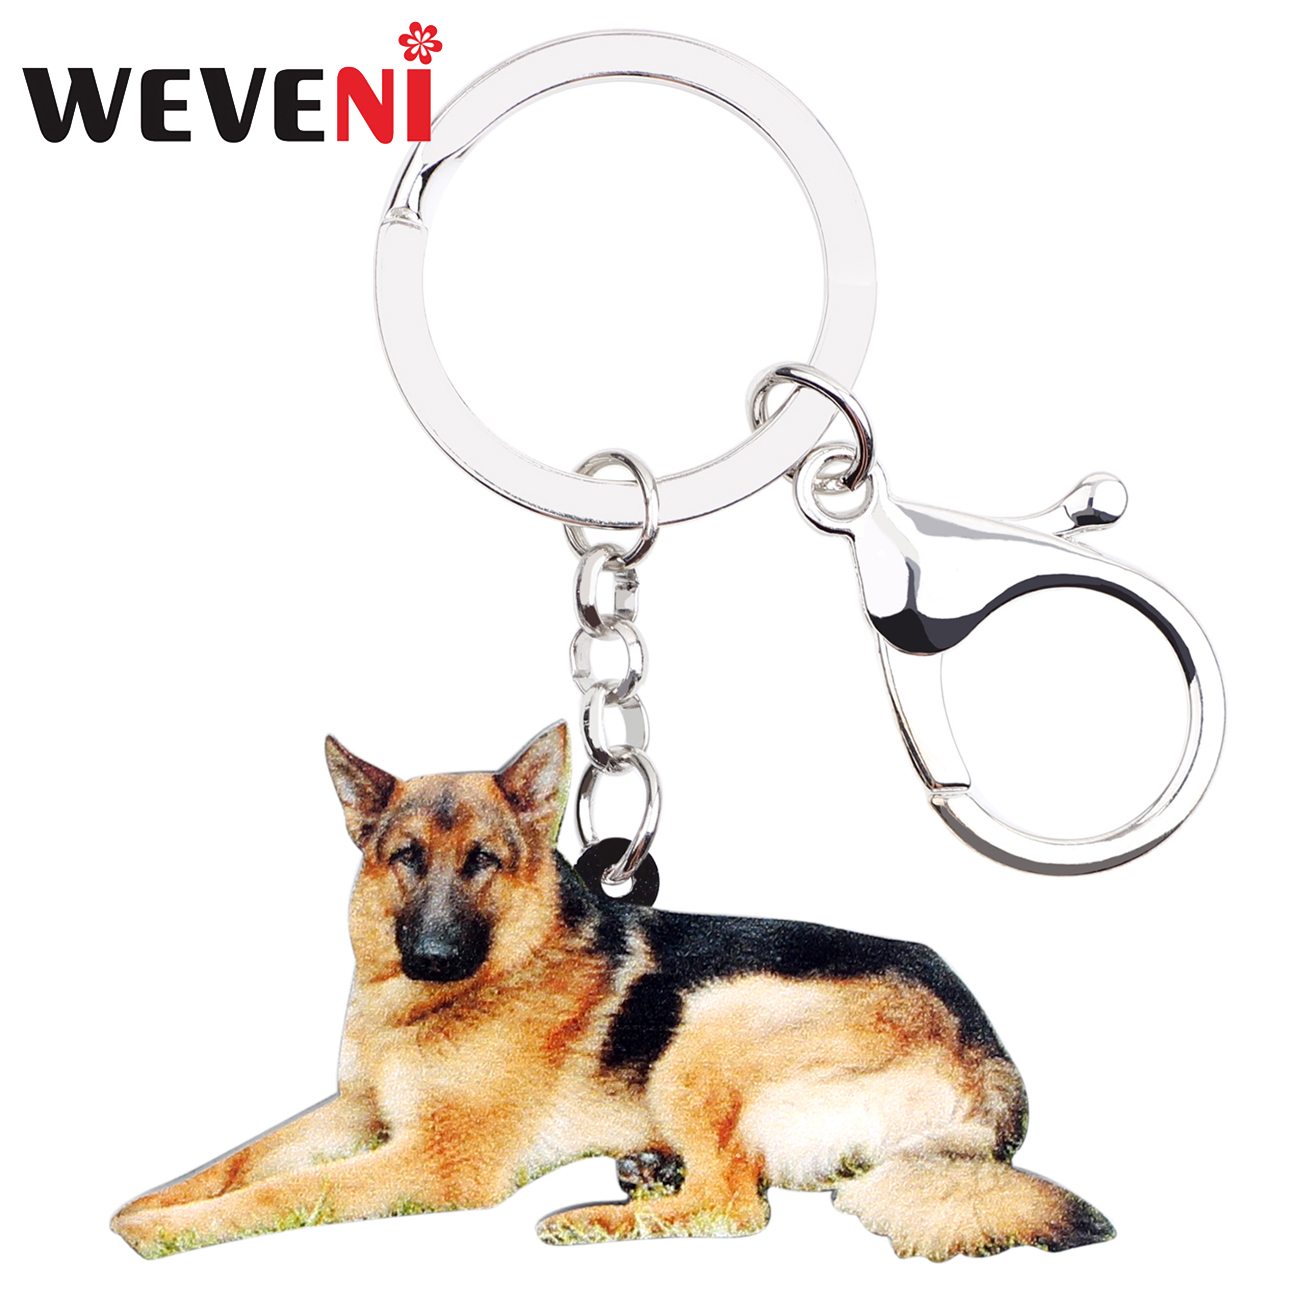 WEVENI Acrylic German Shepherd Dog Key Chains Keychains Holder Animal Jewelry For Women Girls Pet Lovers Bag Car Purse Charms